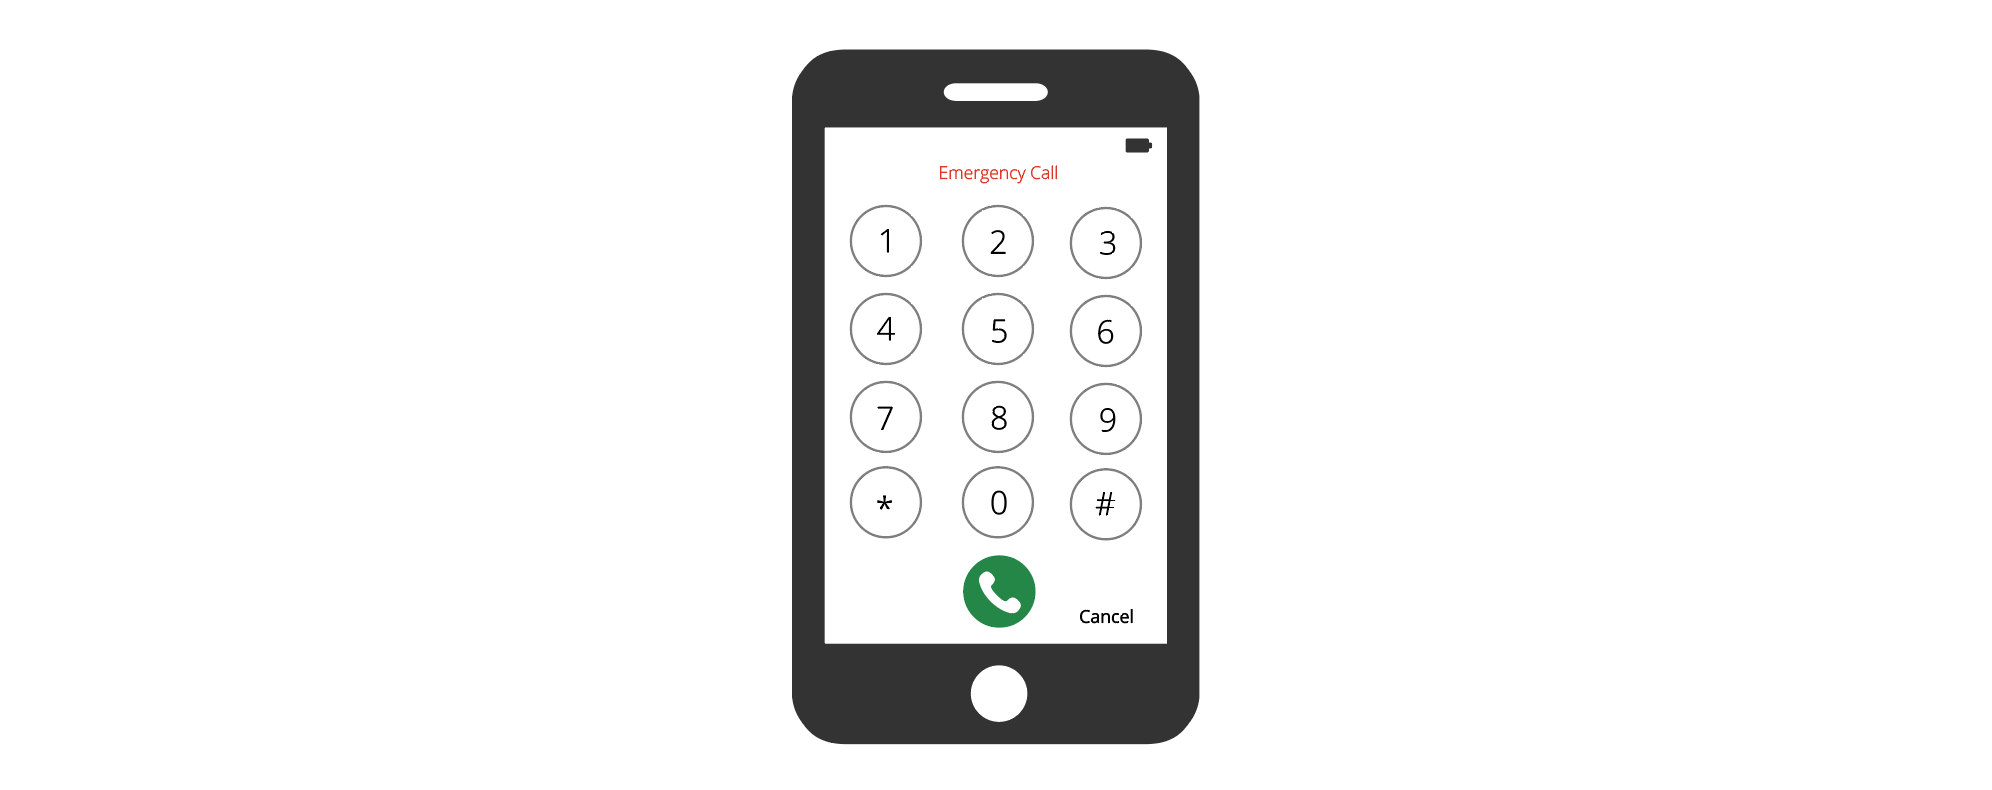 Illustration of iPhone emergency dial screen